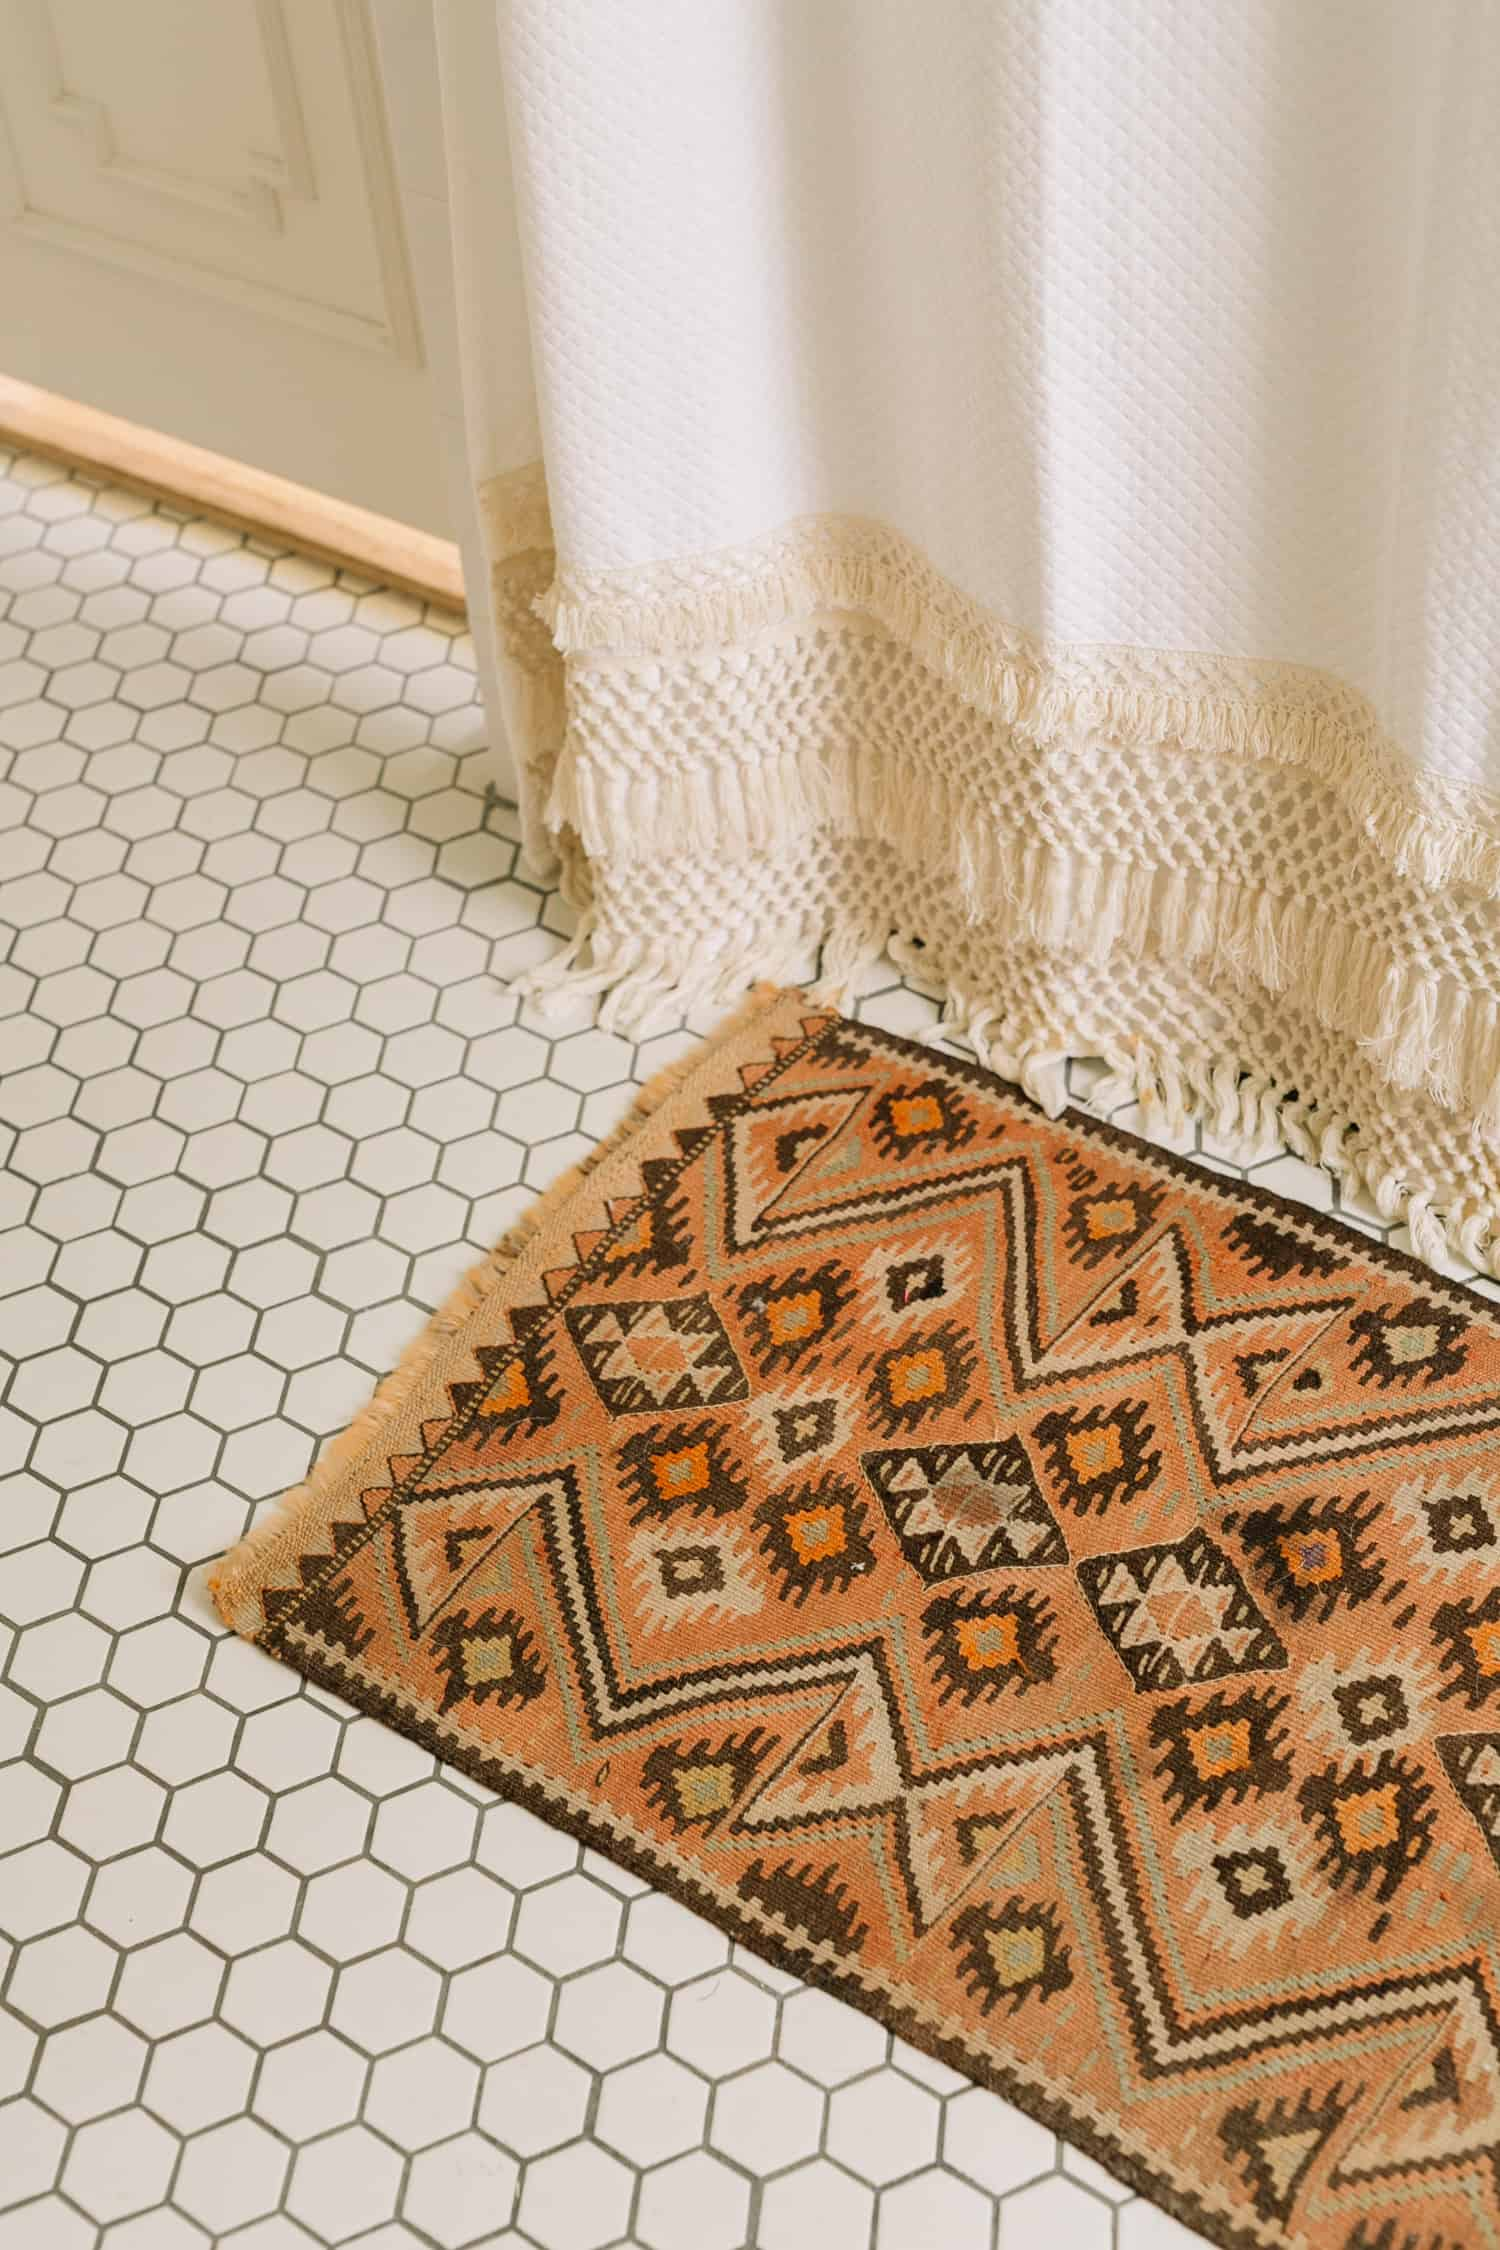 How To Shop For Vintage Rugs - A